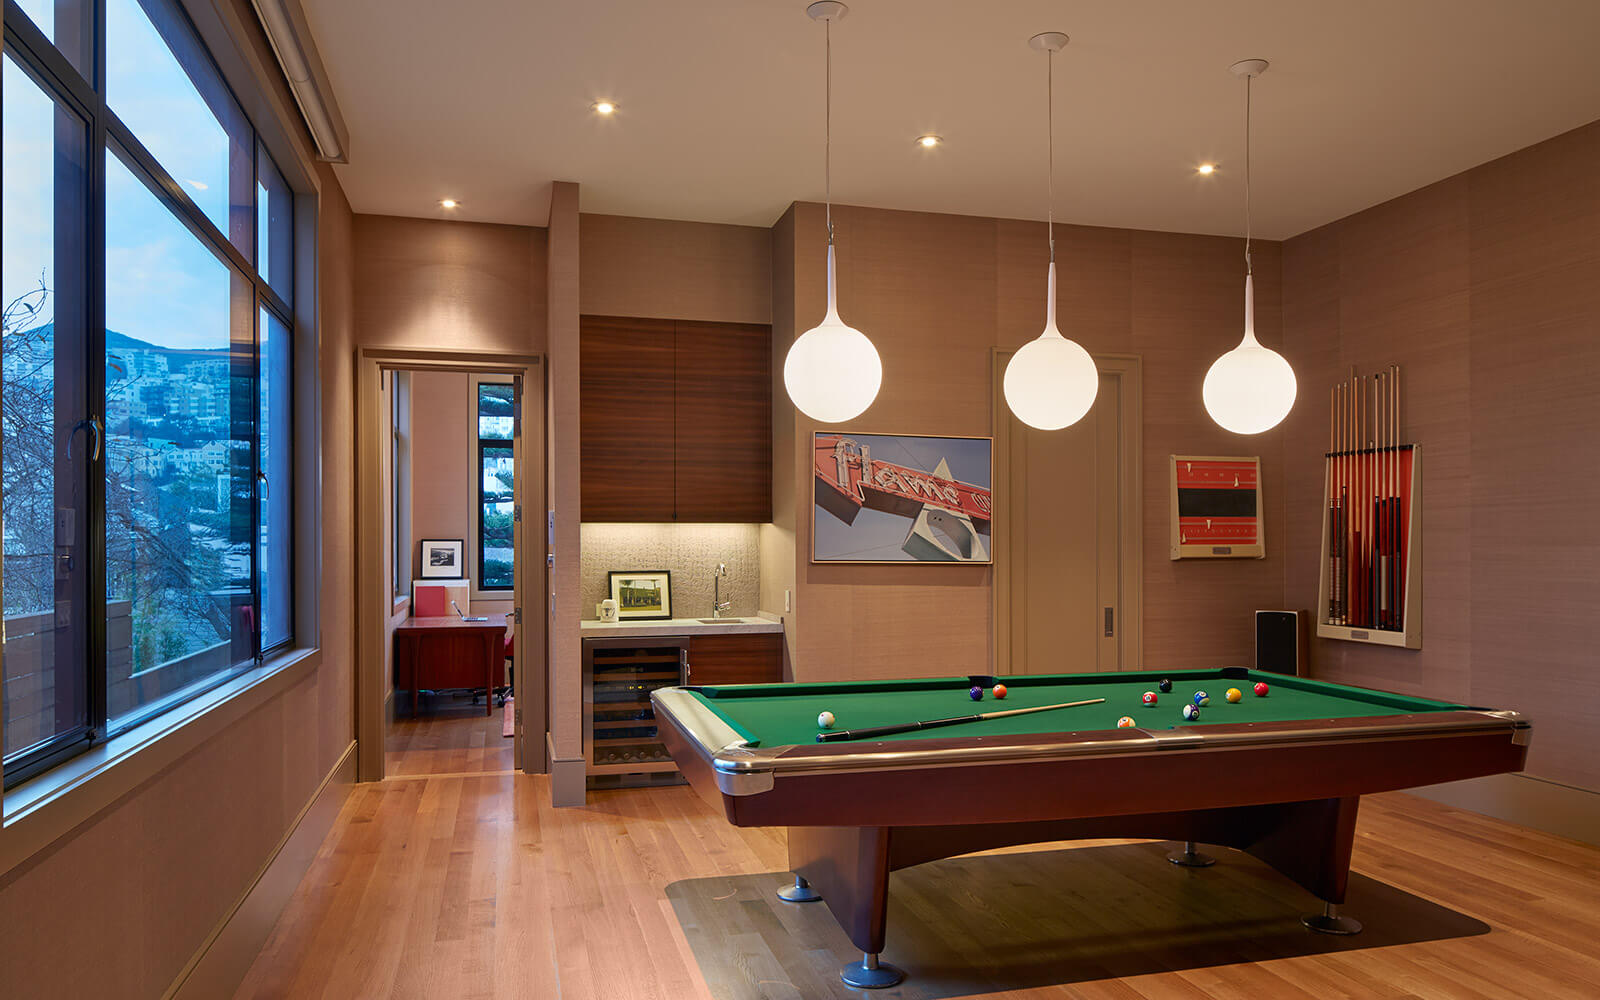 studio vara residential diamond playroom billiard pool